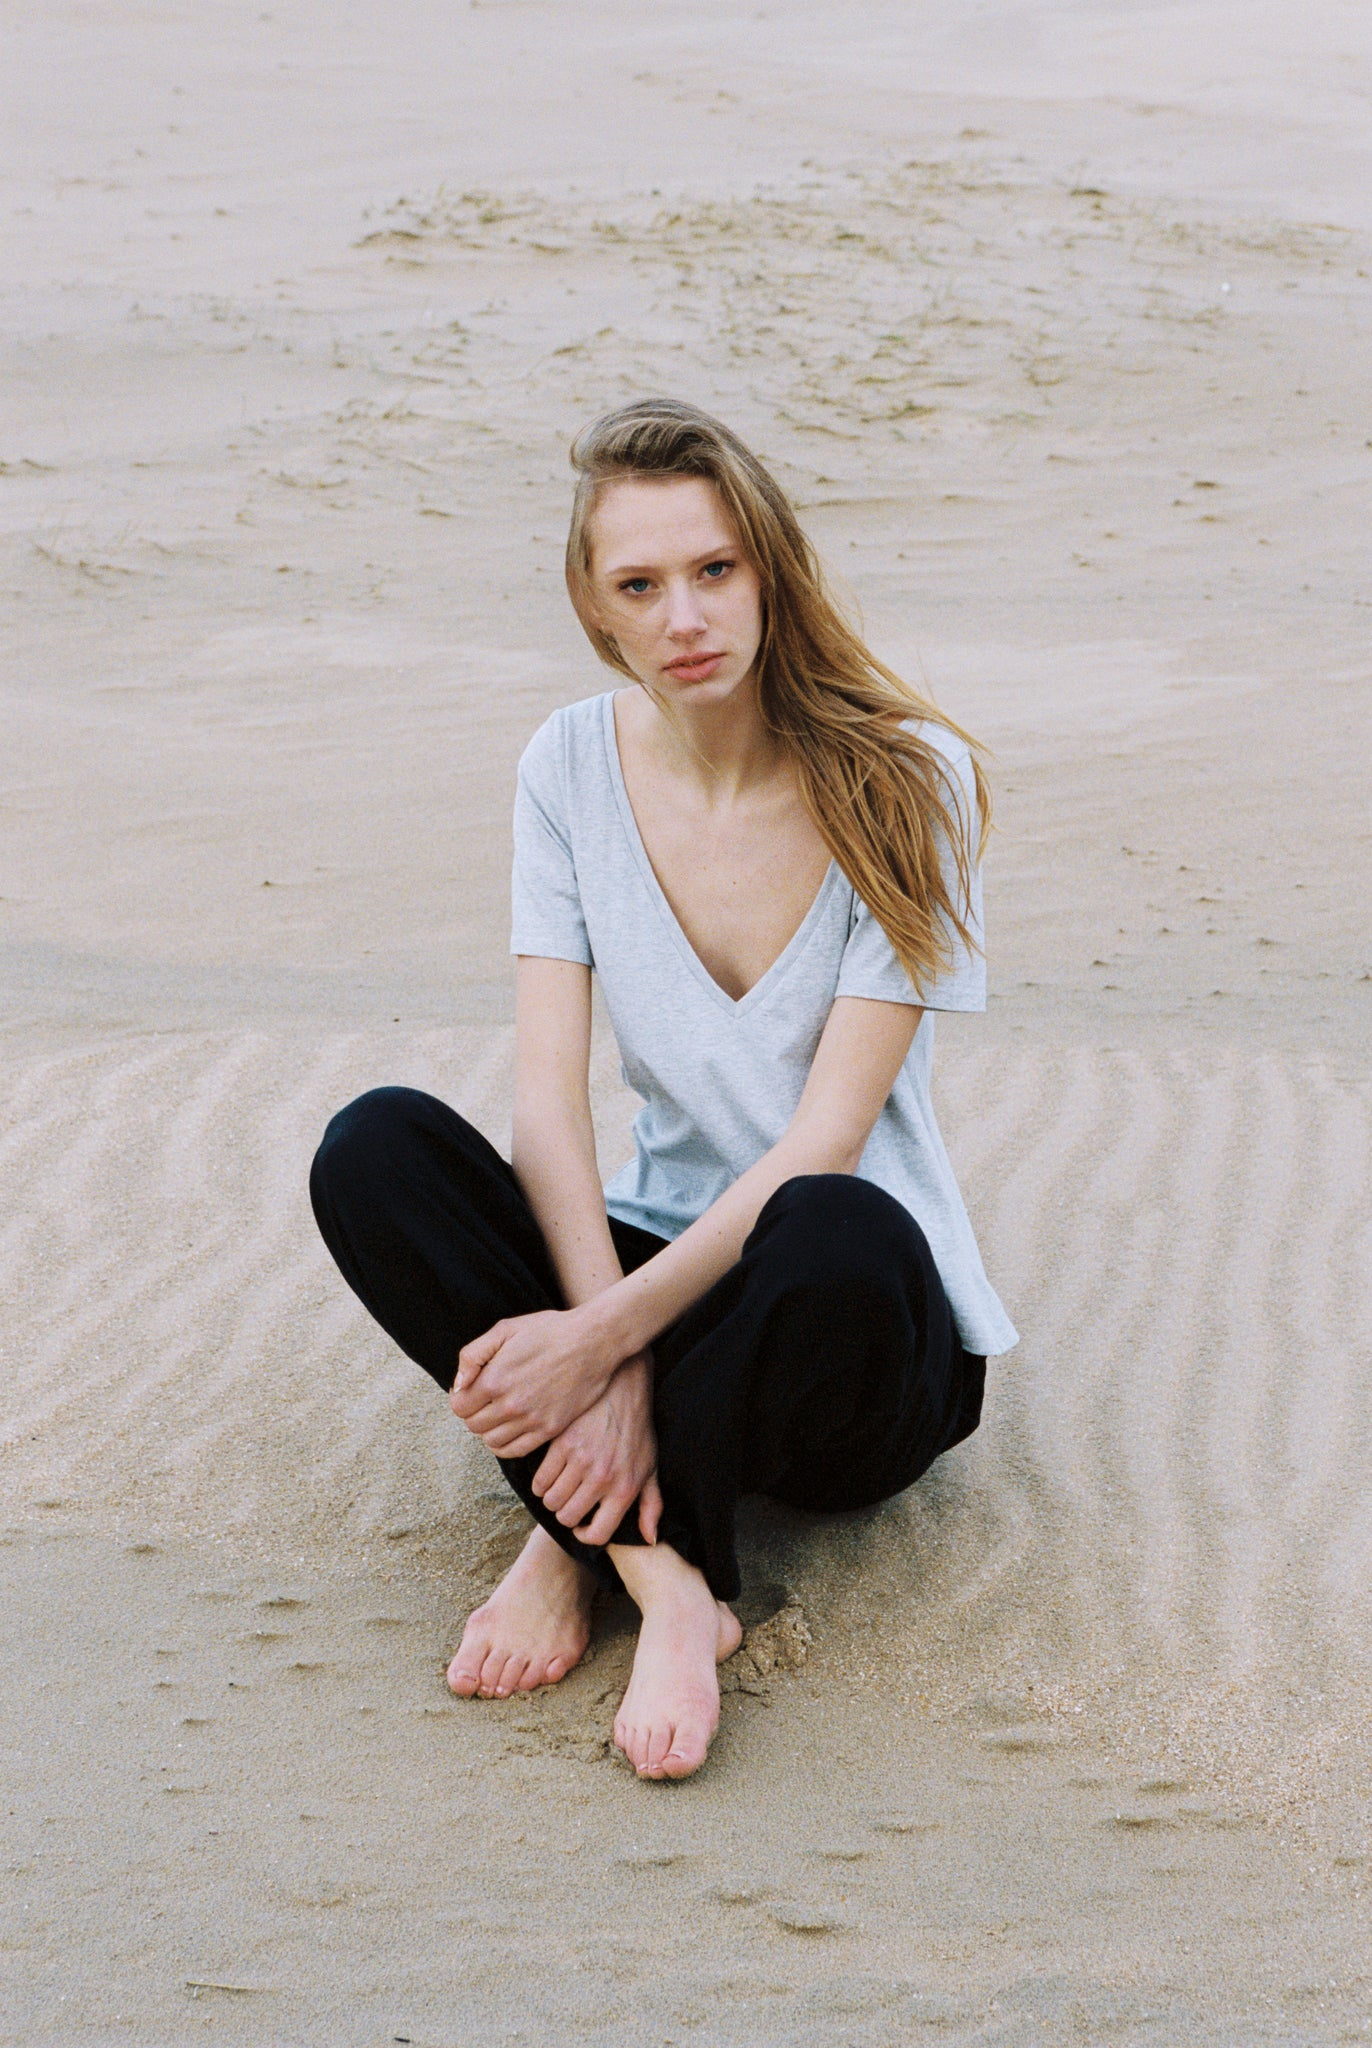 Woman sitting on beach with her organic grey cotton v neck t-shirt on.